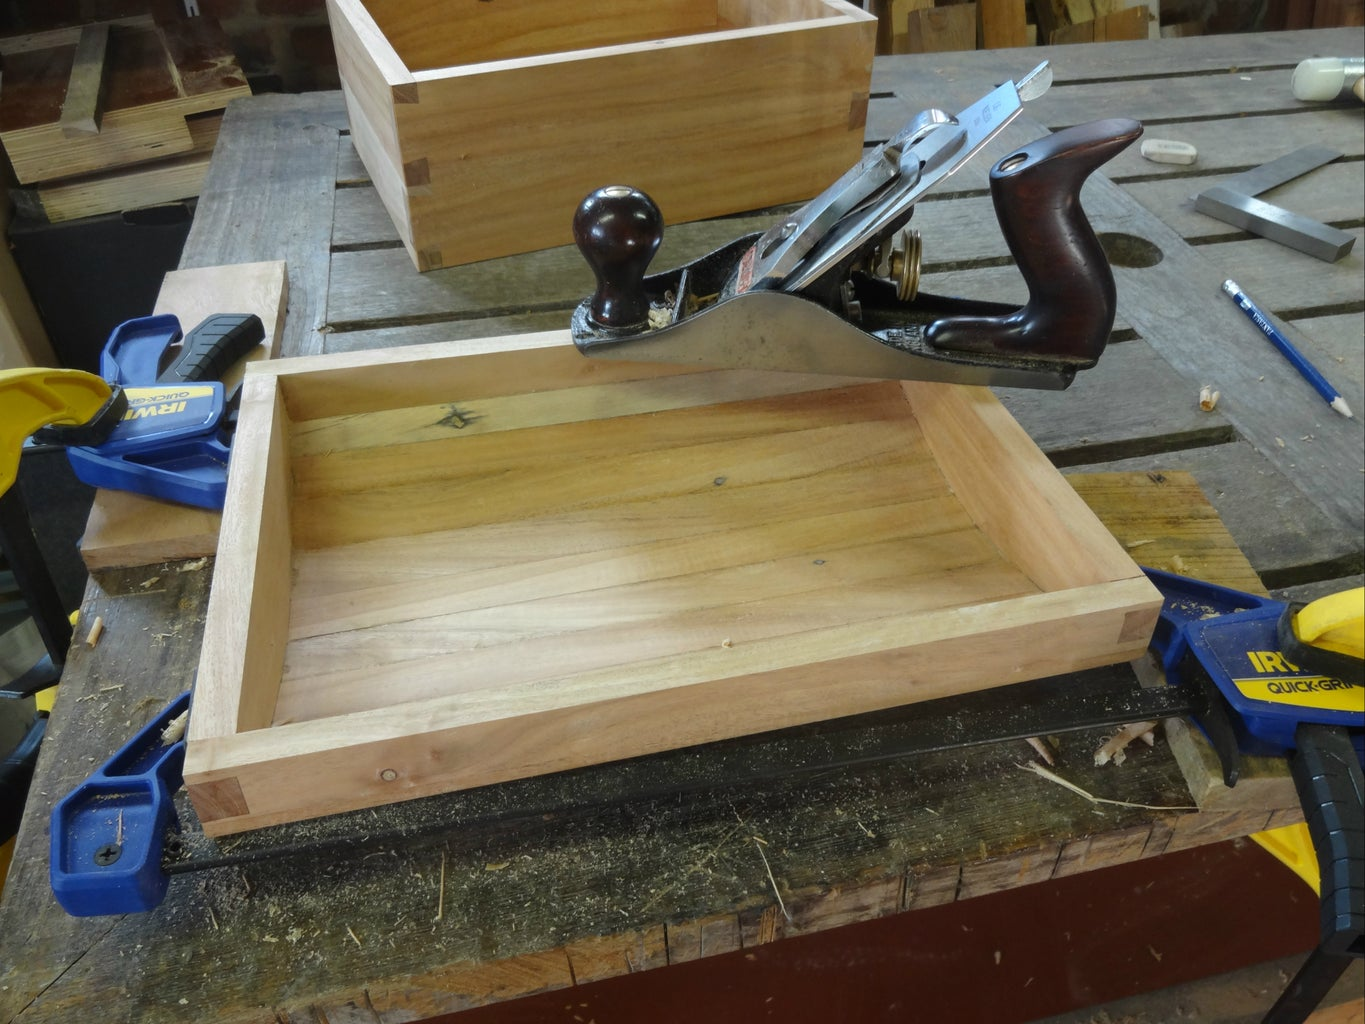 Planing Rim of Lid Flush, Trimming Dovetail Joints